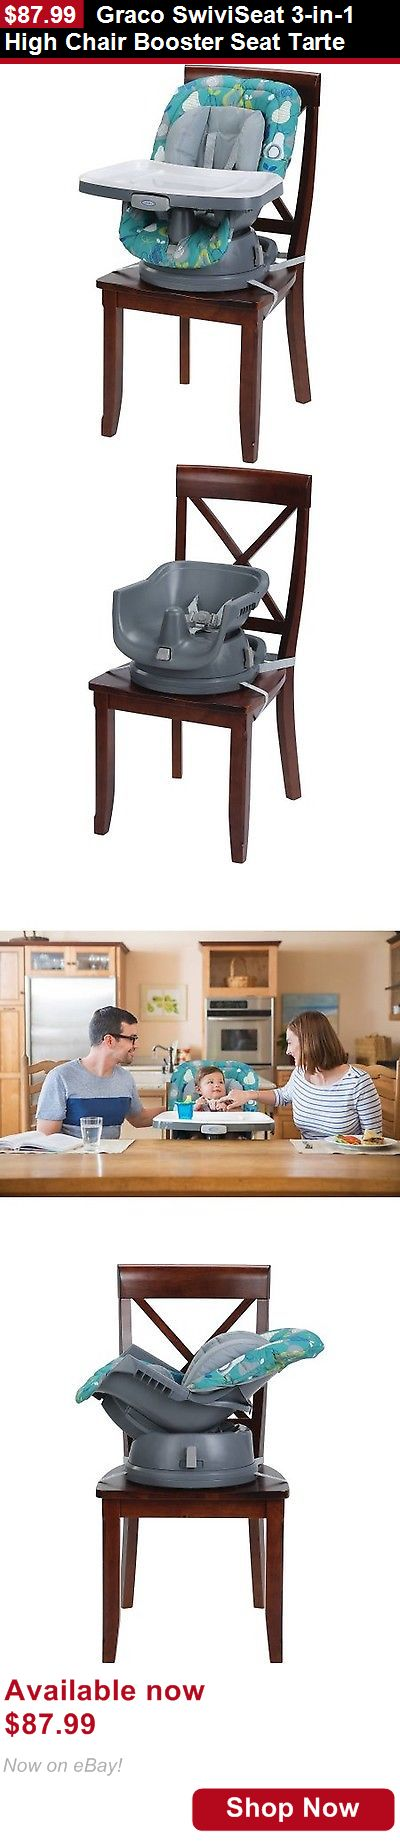 Baby High Chairs: Graco Swiviseat 3-In-1 High Chair Booster Seat Tarte BUY IT NOW ONLY: $87.99